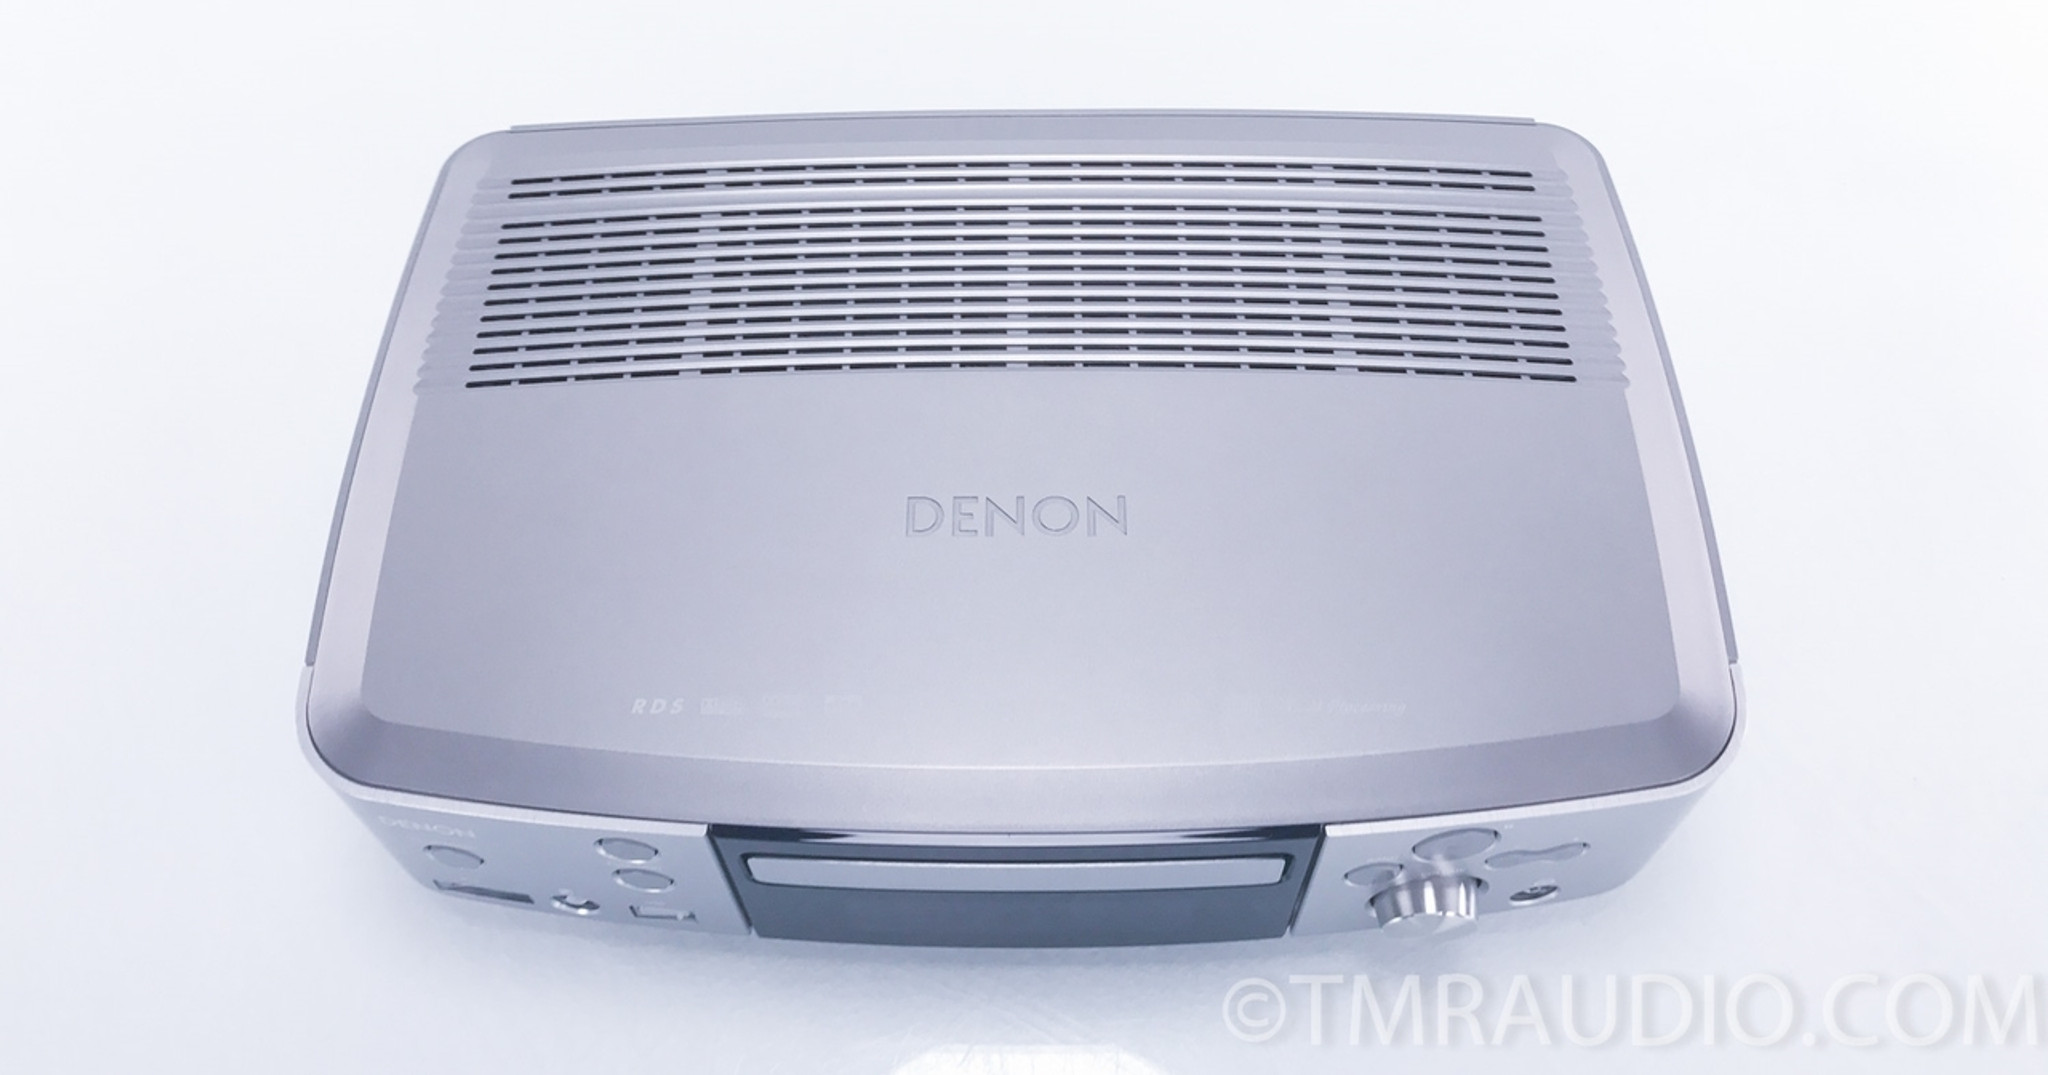 Denon S-301 DVD Entertainment System; Speakers, Receiver & Subwoofer